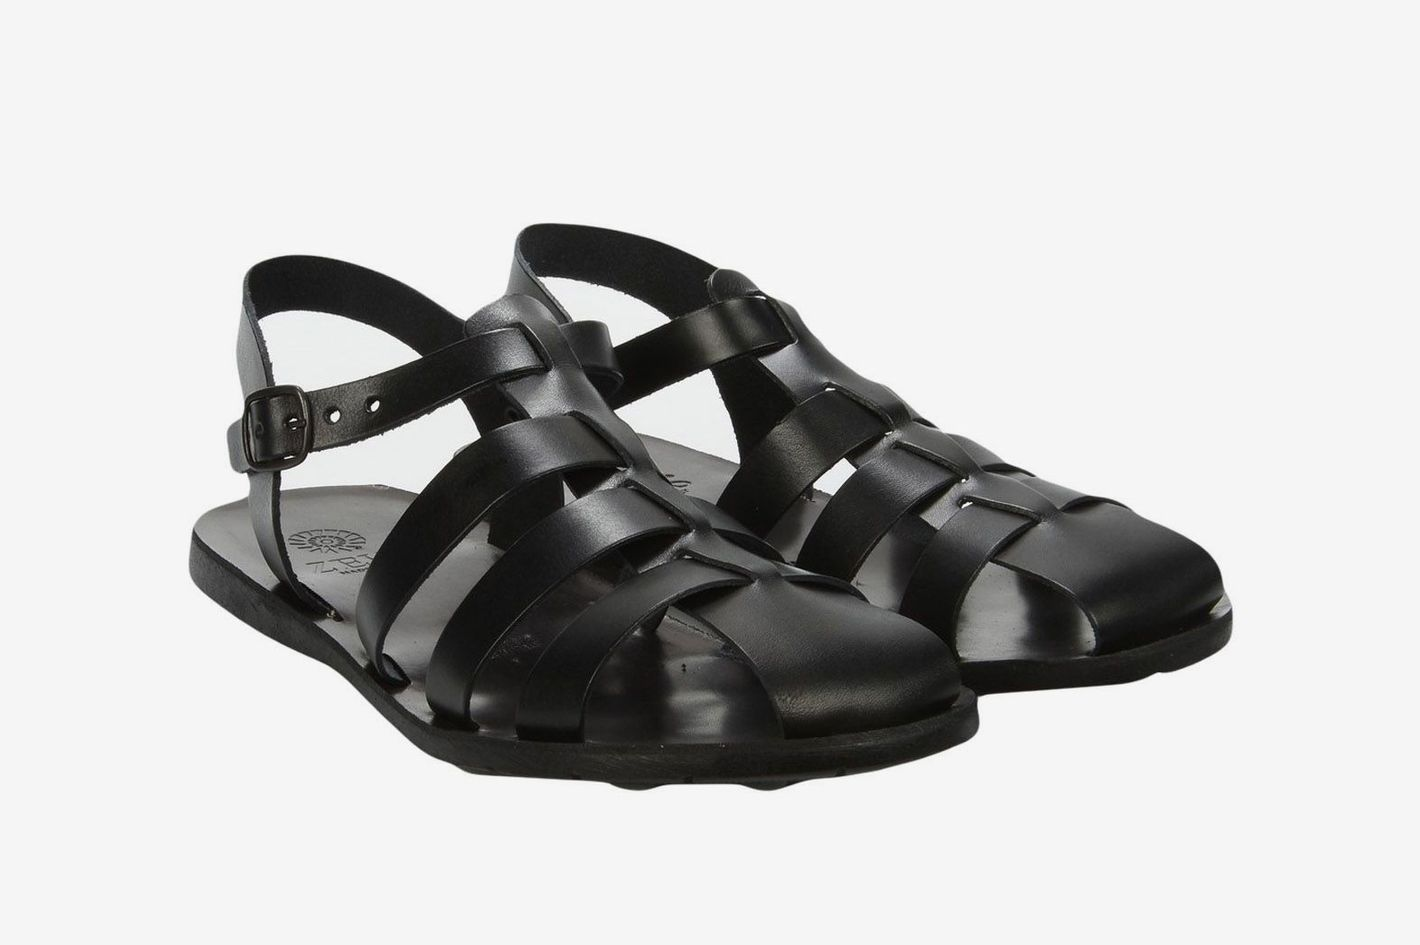 fdf5e46f5 29 Stylish Men s Sandals to Wear This Summer